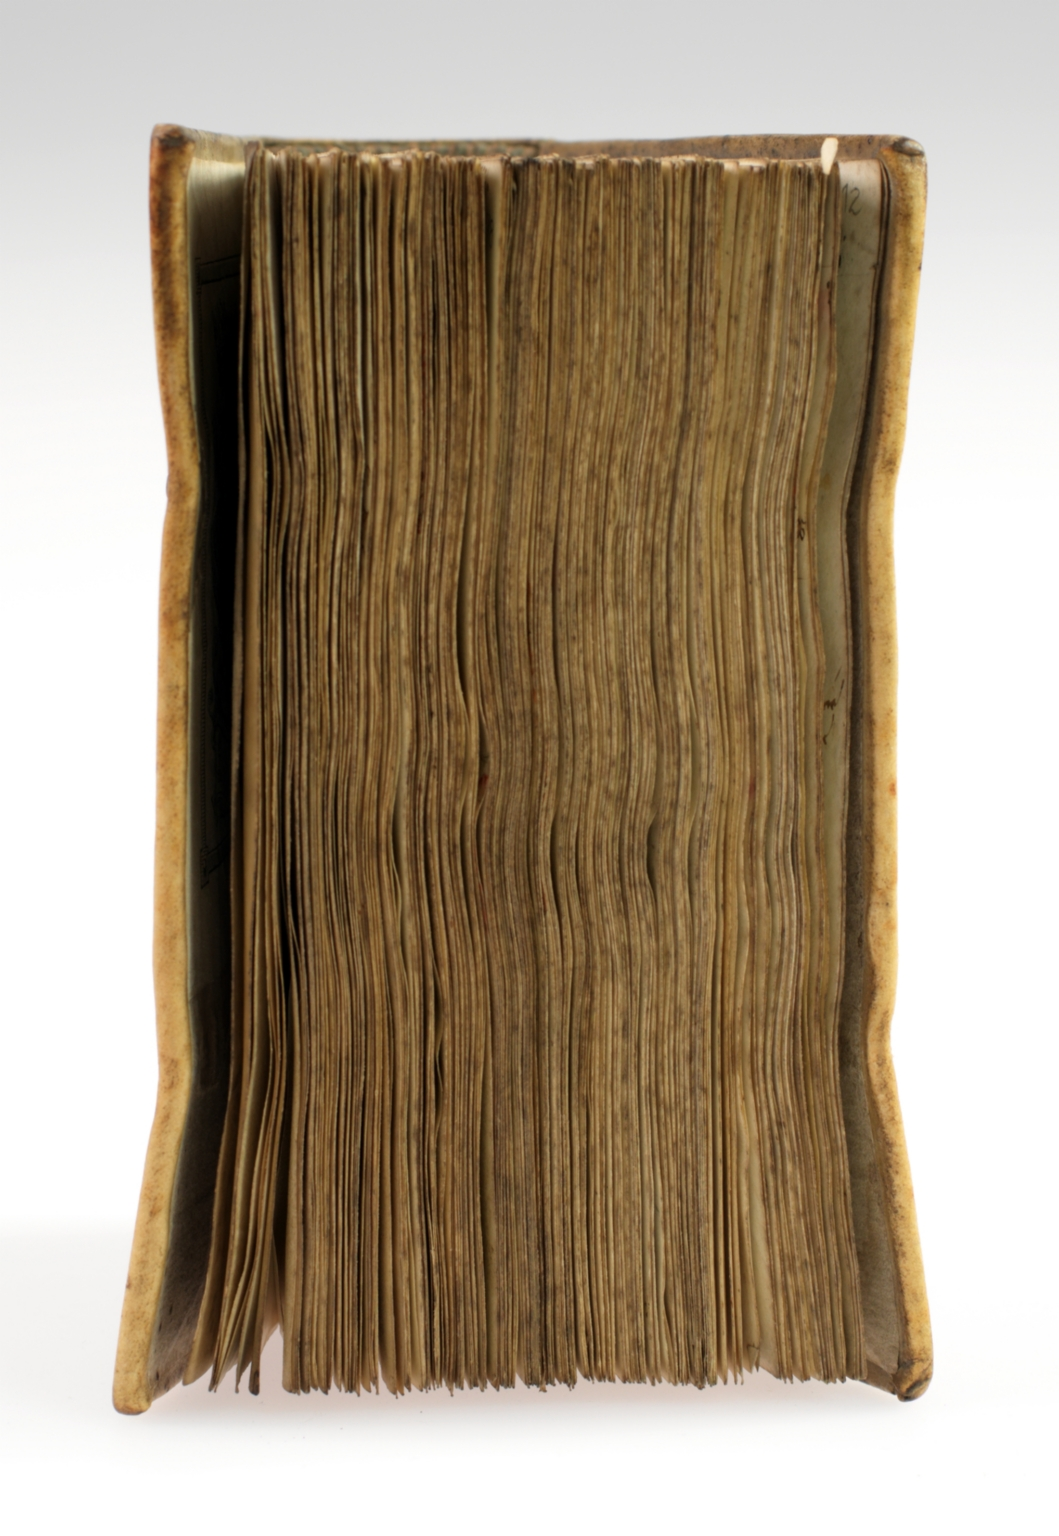 Miscellany of sermons by Caesarius of Arles, Eusebius Gallicanus, Eucherius of Lyon, Faustus of Riez, Augustine, Hugh of St. Victor, Pope Benedict XII, and Pope Urban V, fore edge